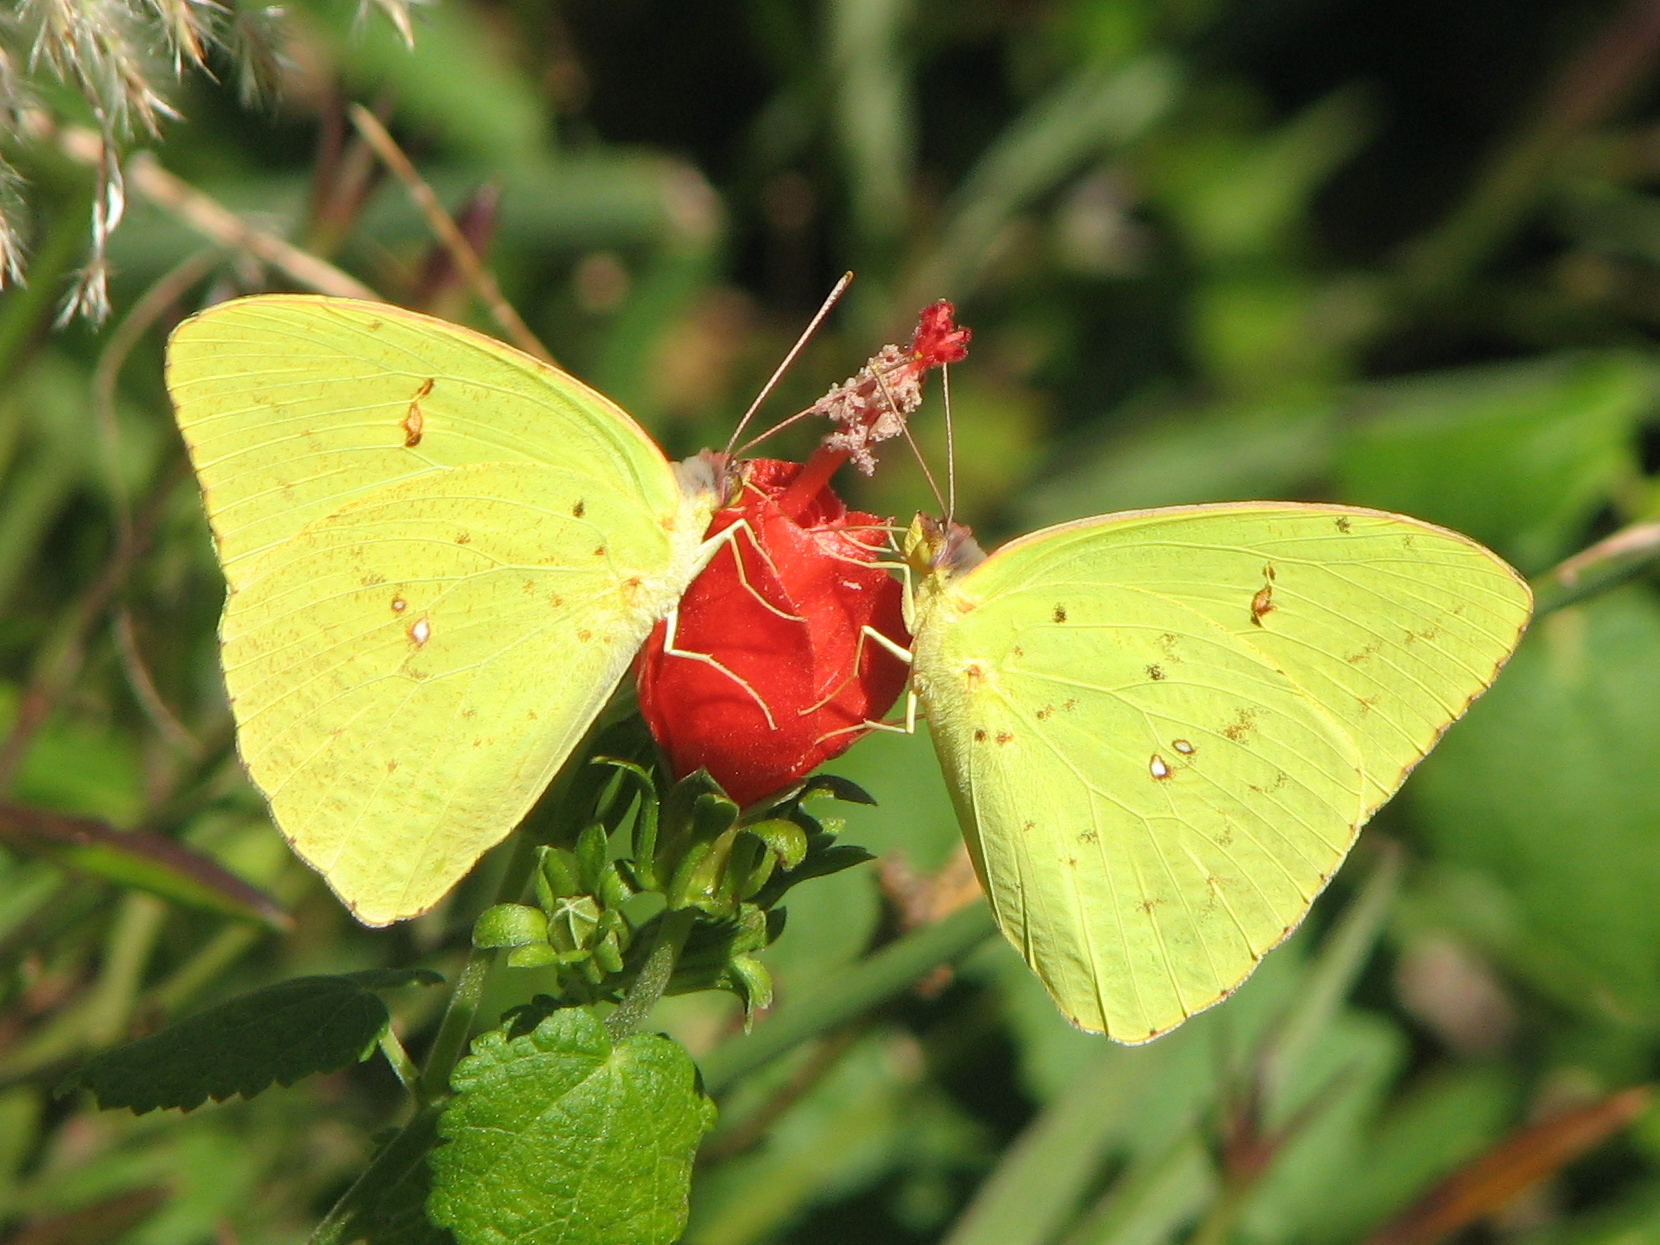 Clouded sulphur pictures and information |Clouded Sulphur Butterfly